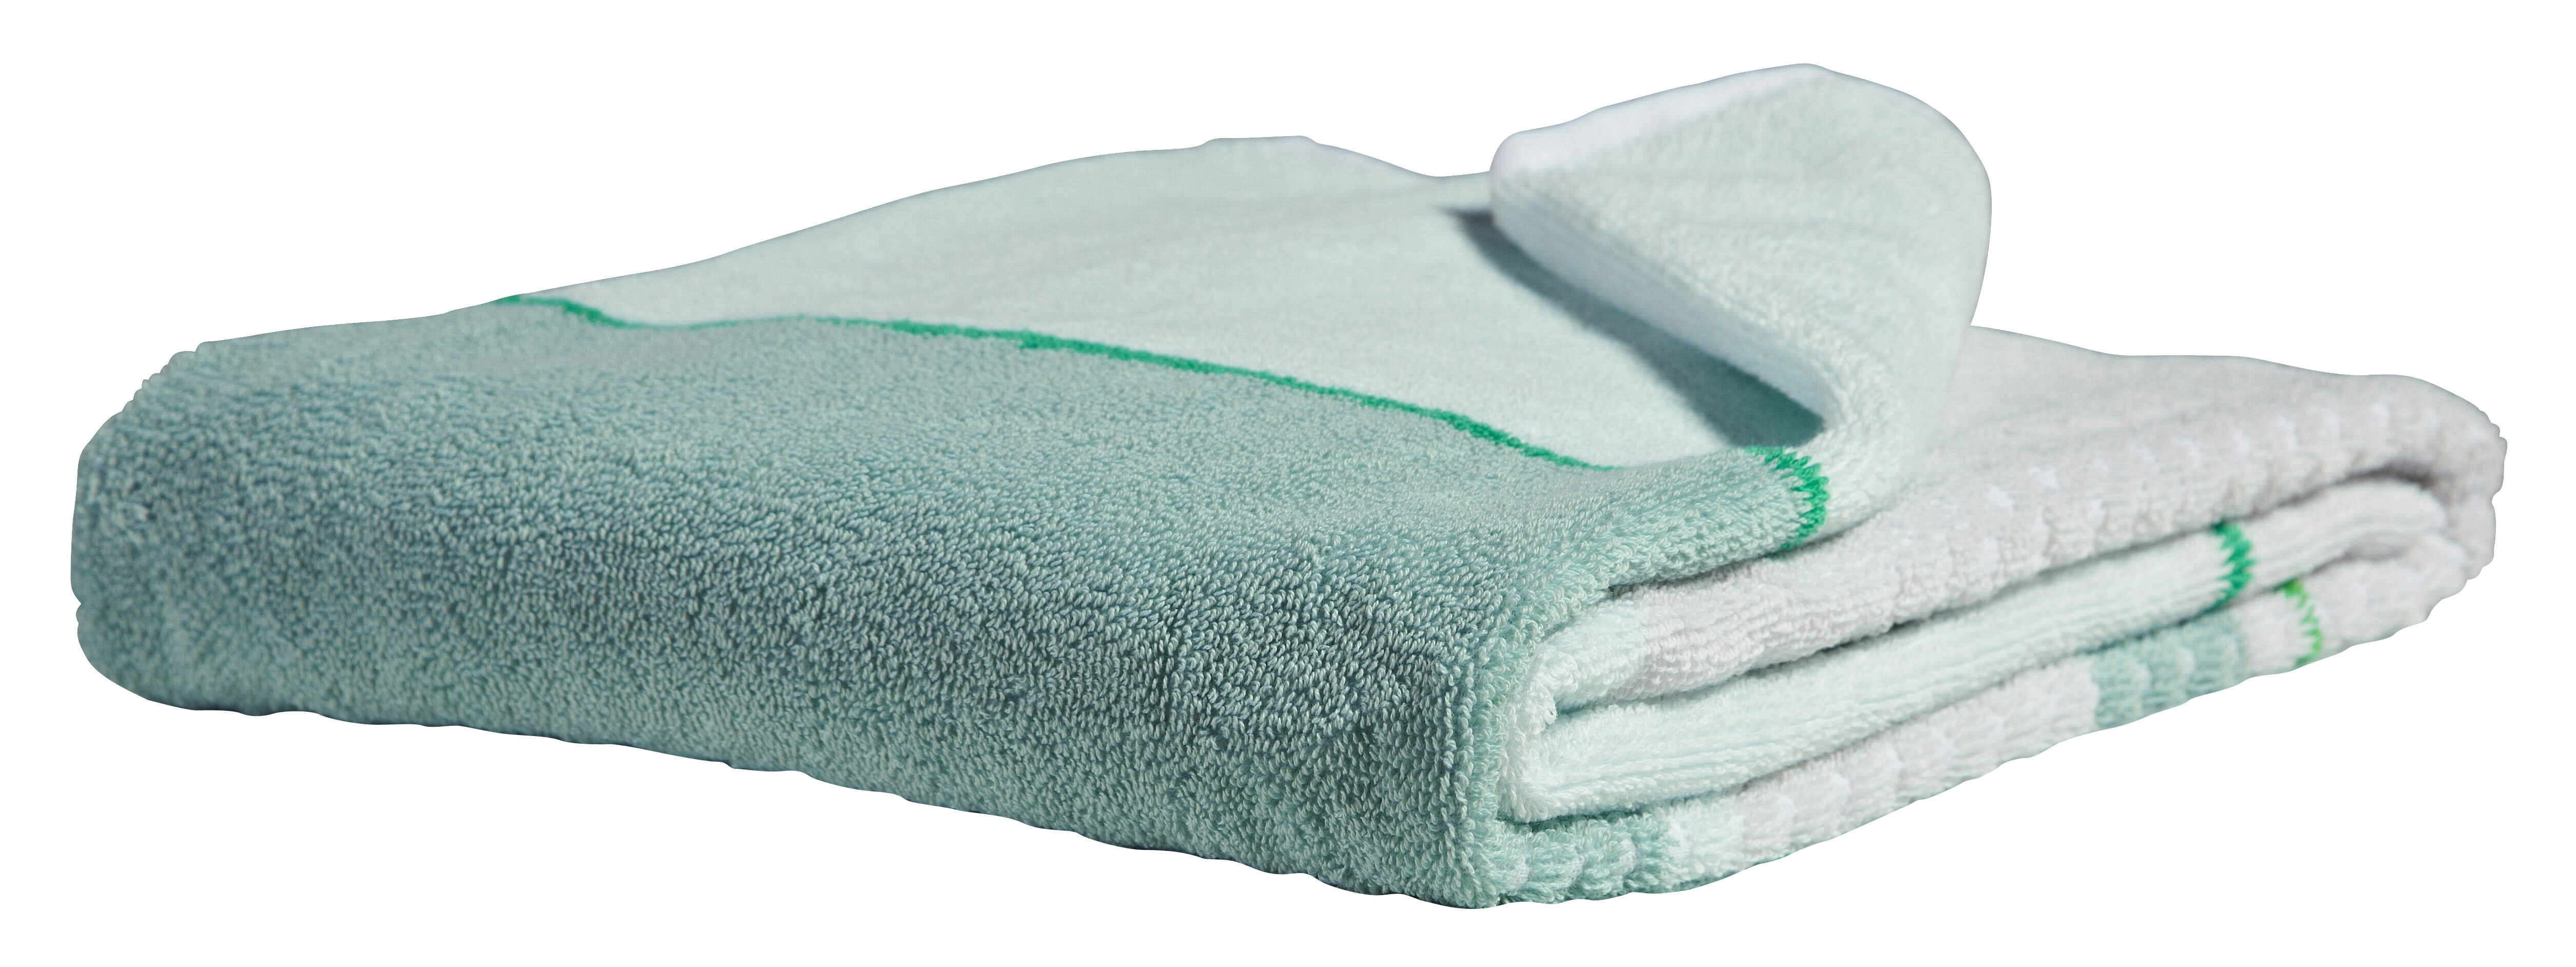 ... > Bathroom accessories > Glass Green Towel - 140 x 70 cm by Hay